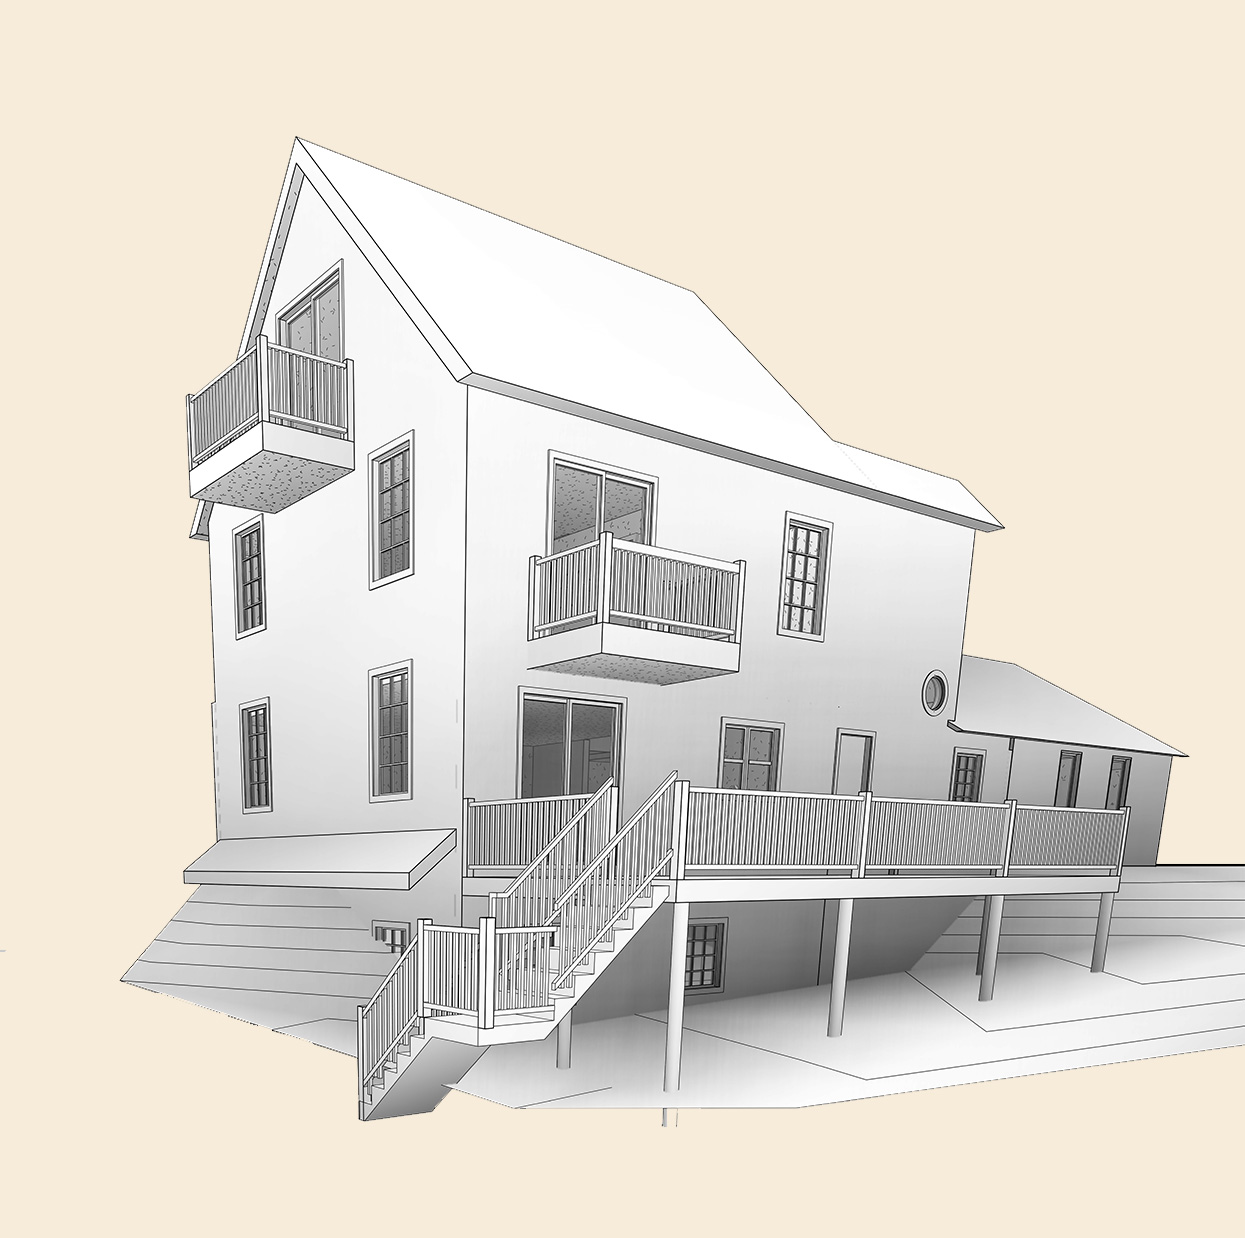 Schematic-Architectural-Model-of-2-Story-House_Residential-Project-by-United-BIM